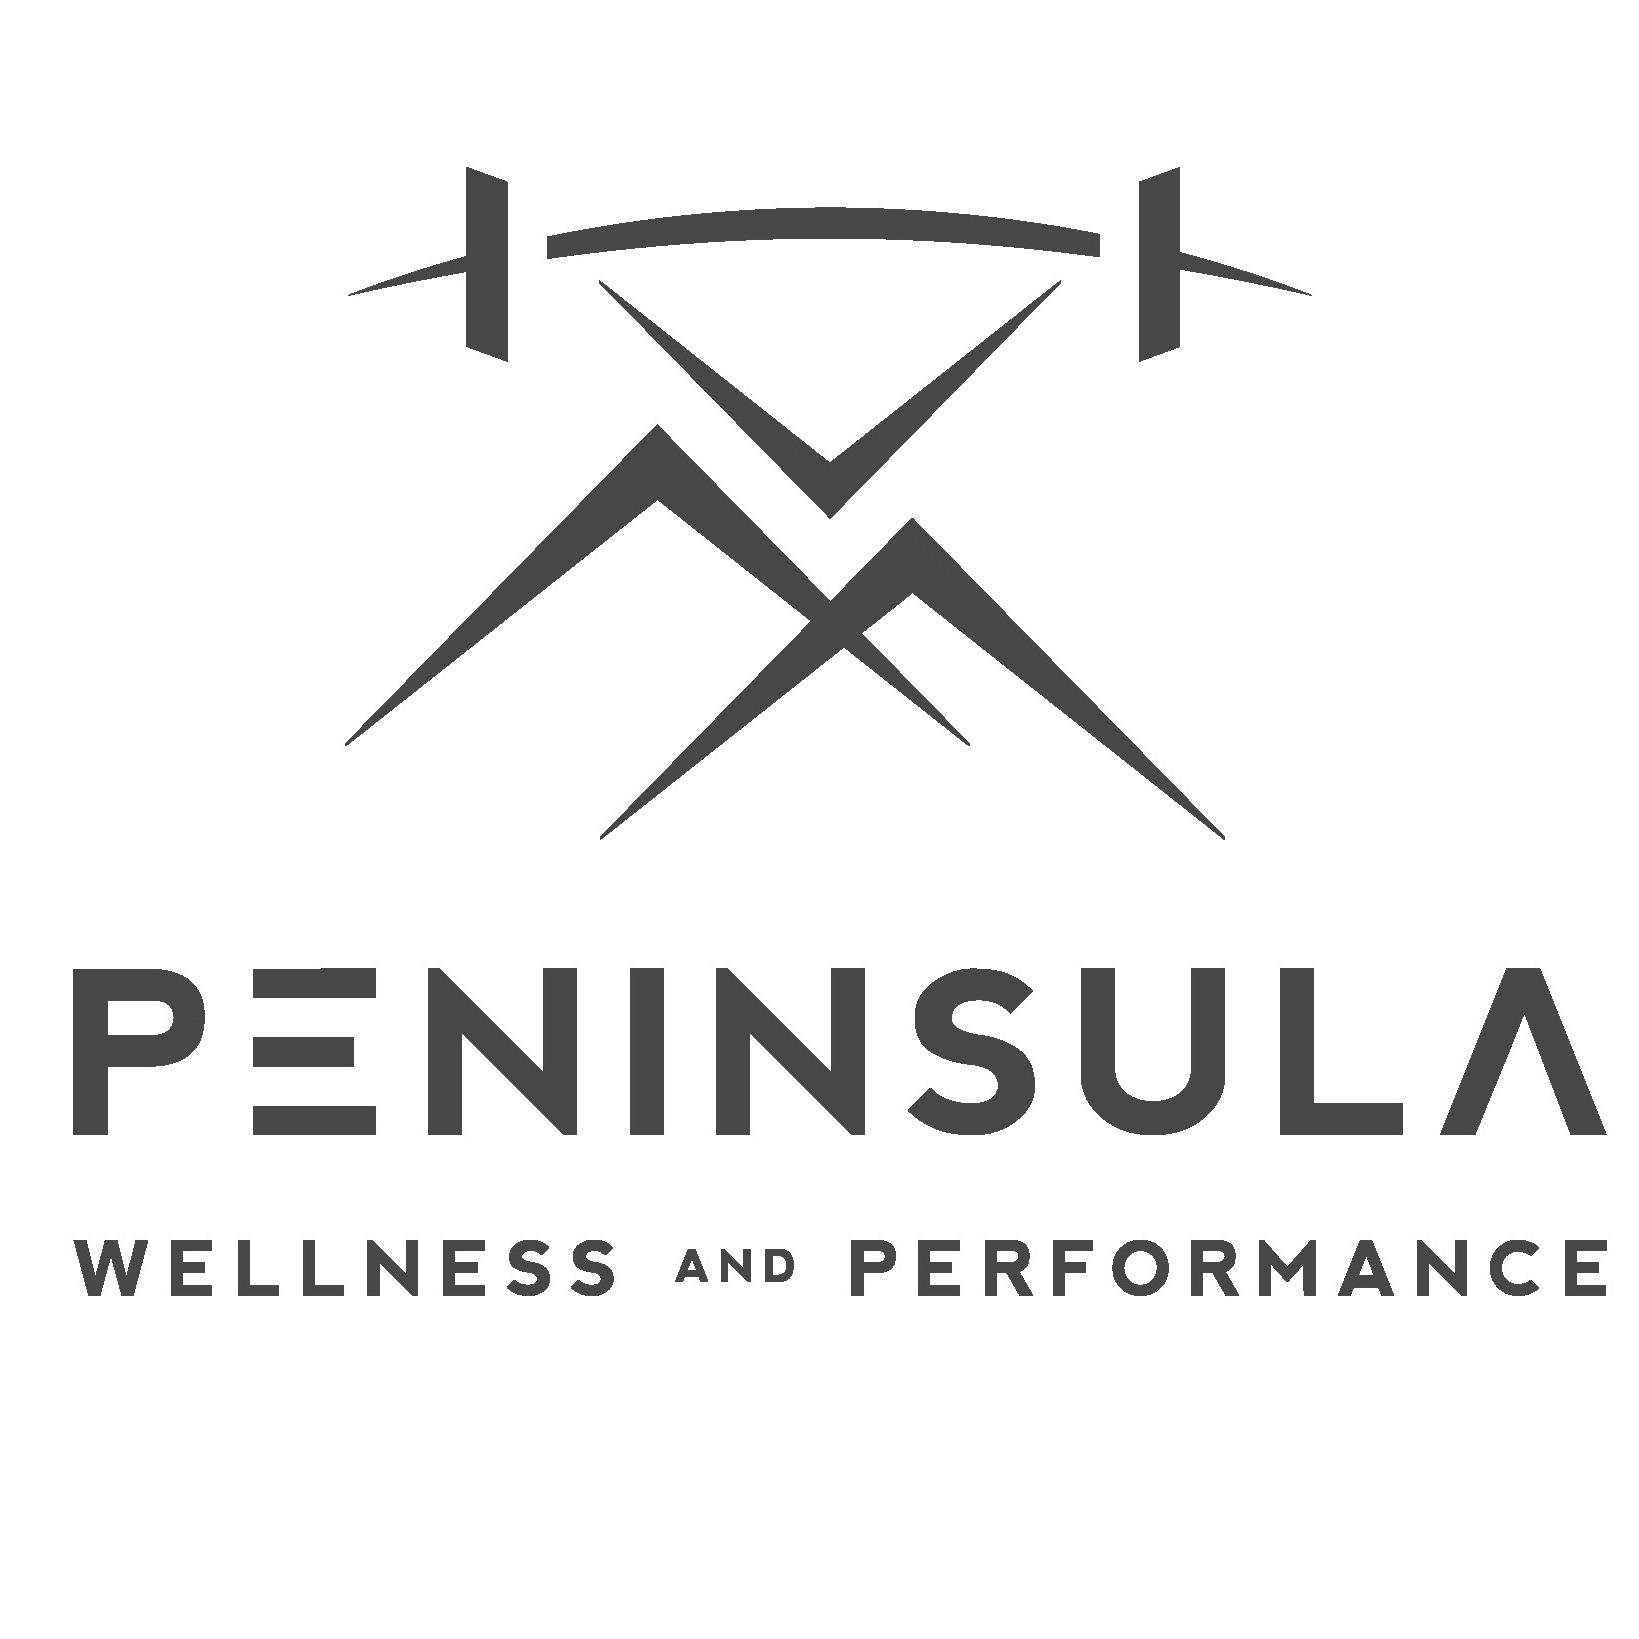 Peninsula Wellness And Performance